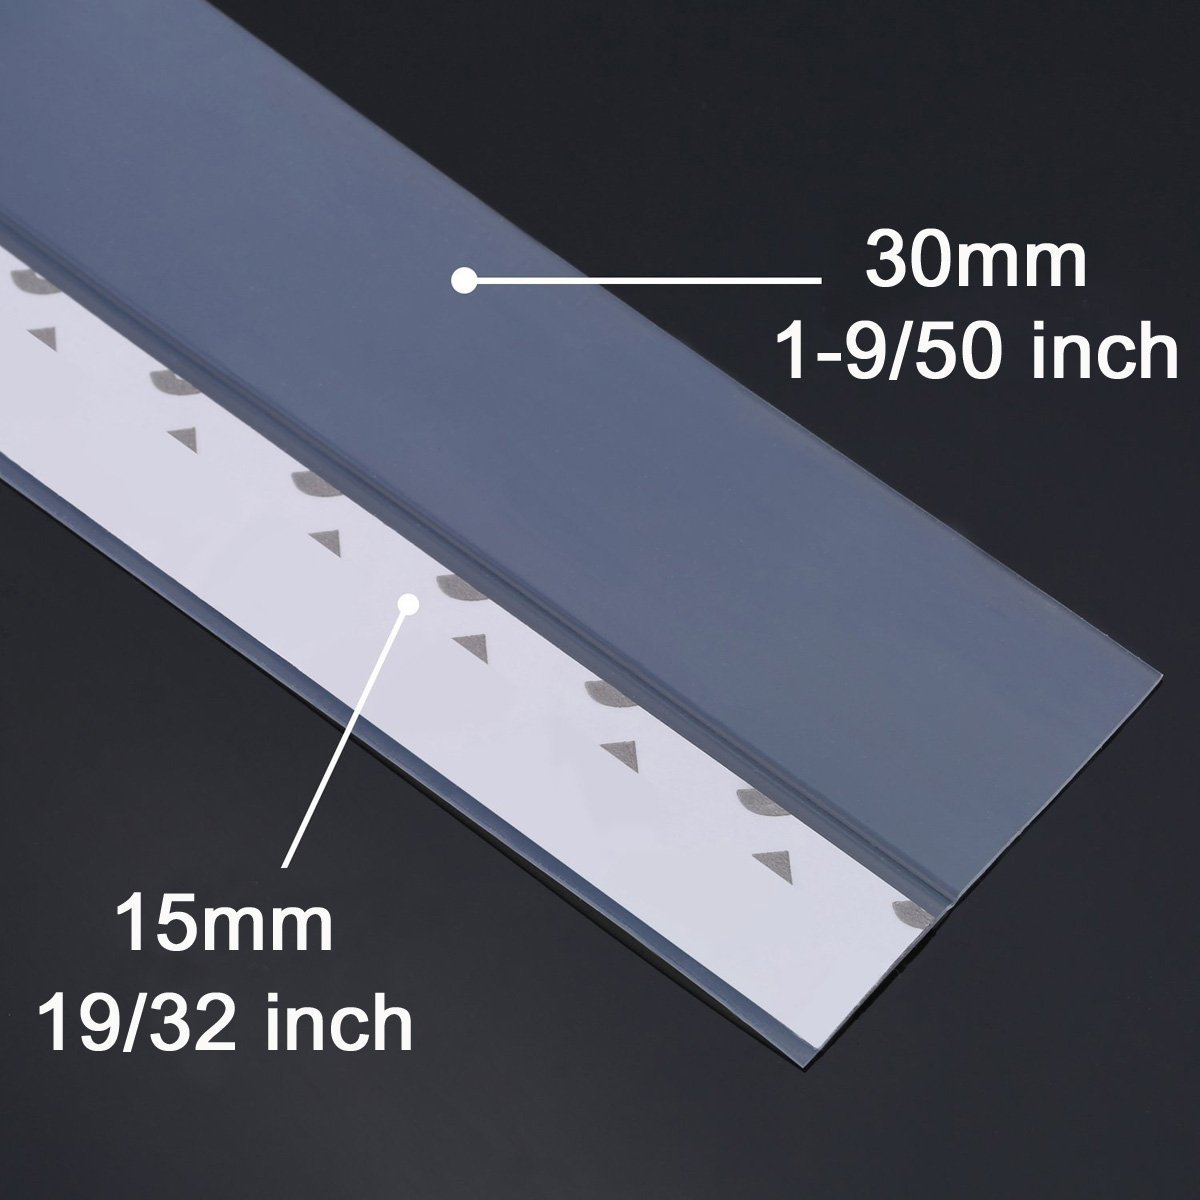 45mm 45mm Width Cedmon 16 Ft Long Weather Stripping Self Adhesive Door Bottom Frameless Silicone Draft Stopper for Doors and Windows Insulation Soundproof Seal Strip Translucent